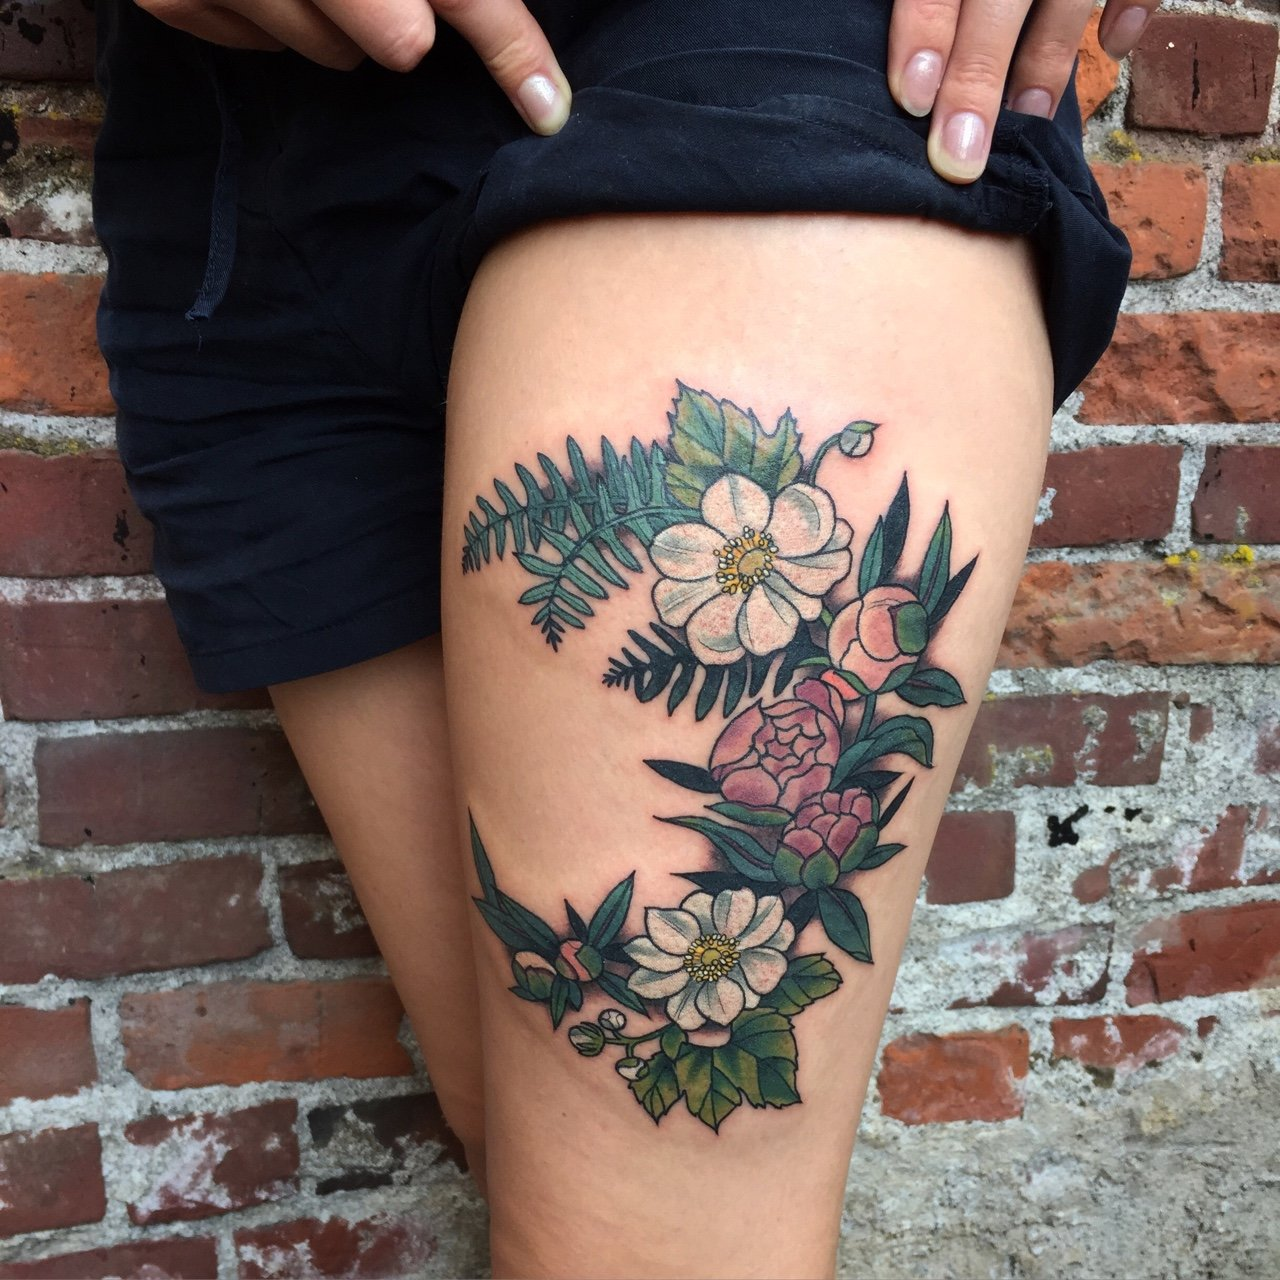 Floral pattern on the front surface of the thigh